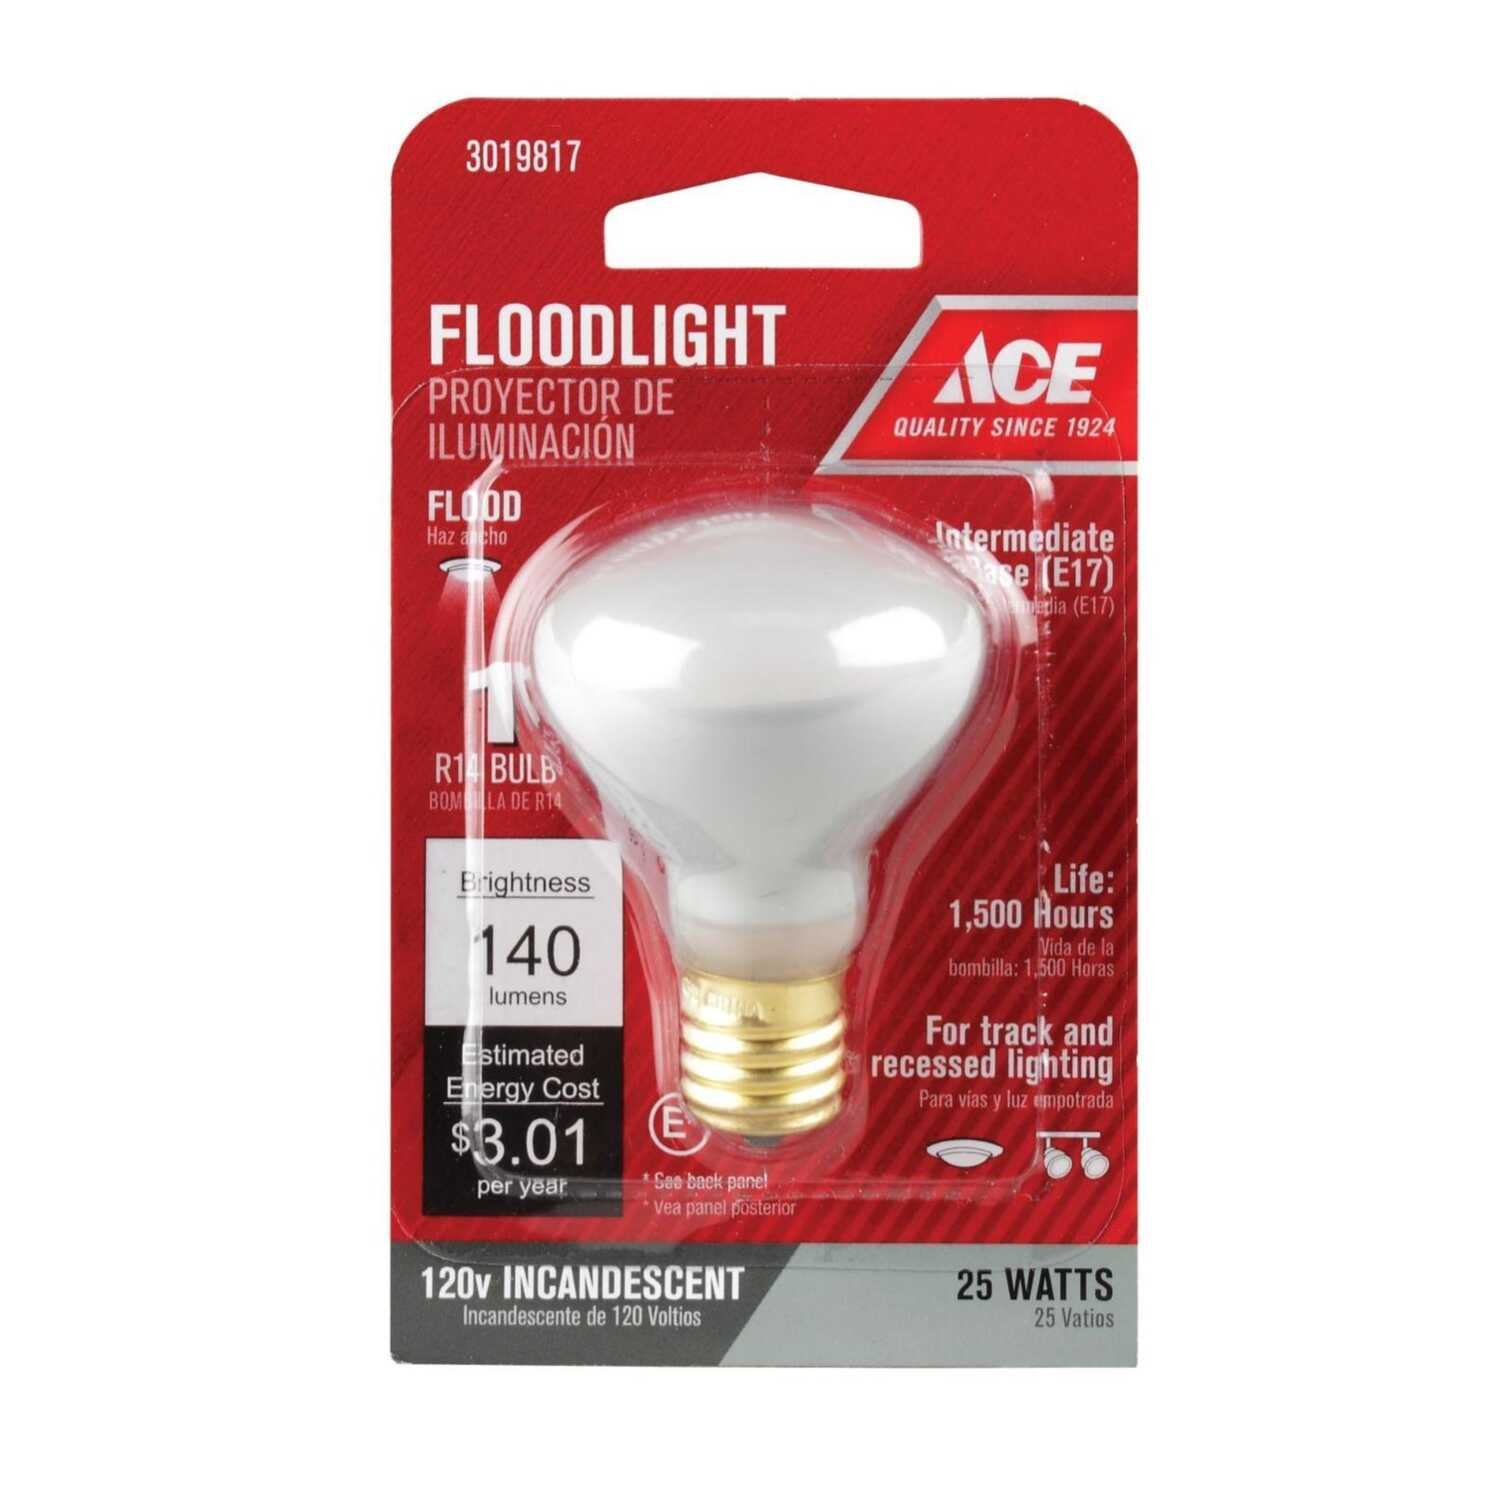 Ace  40 watts R14  Incandescent Bulb  Soft White  Floodlight